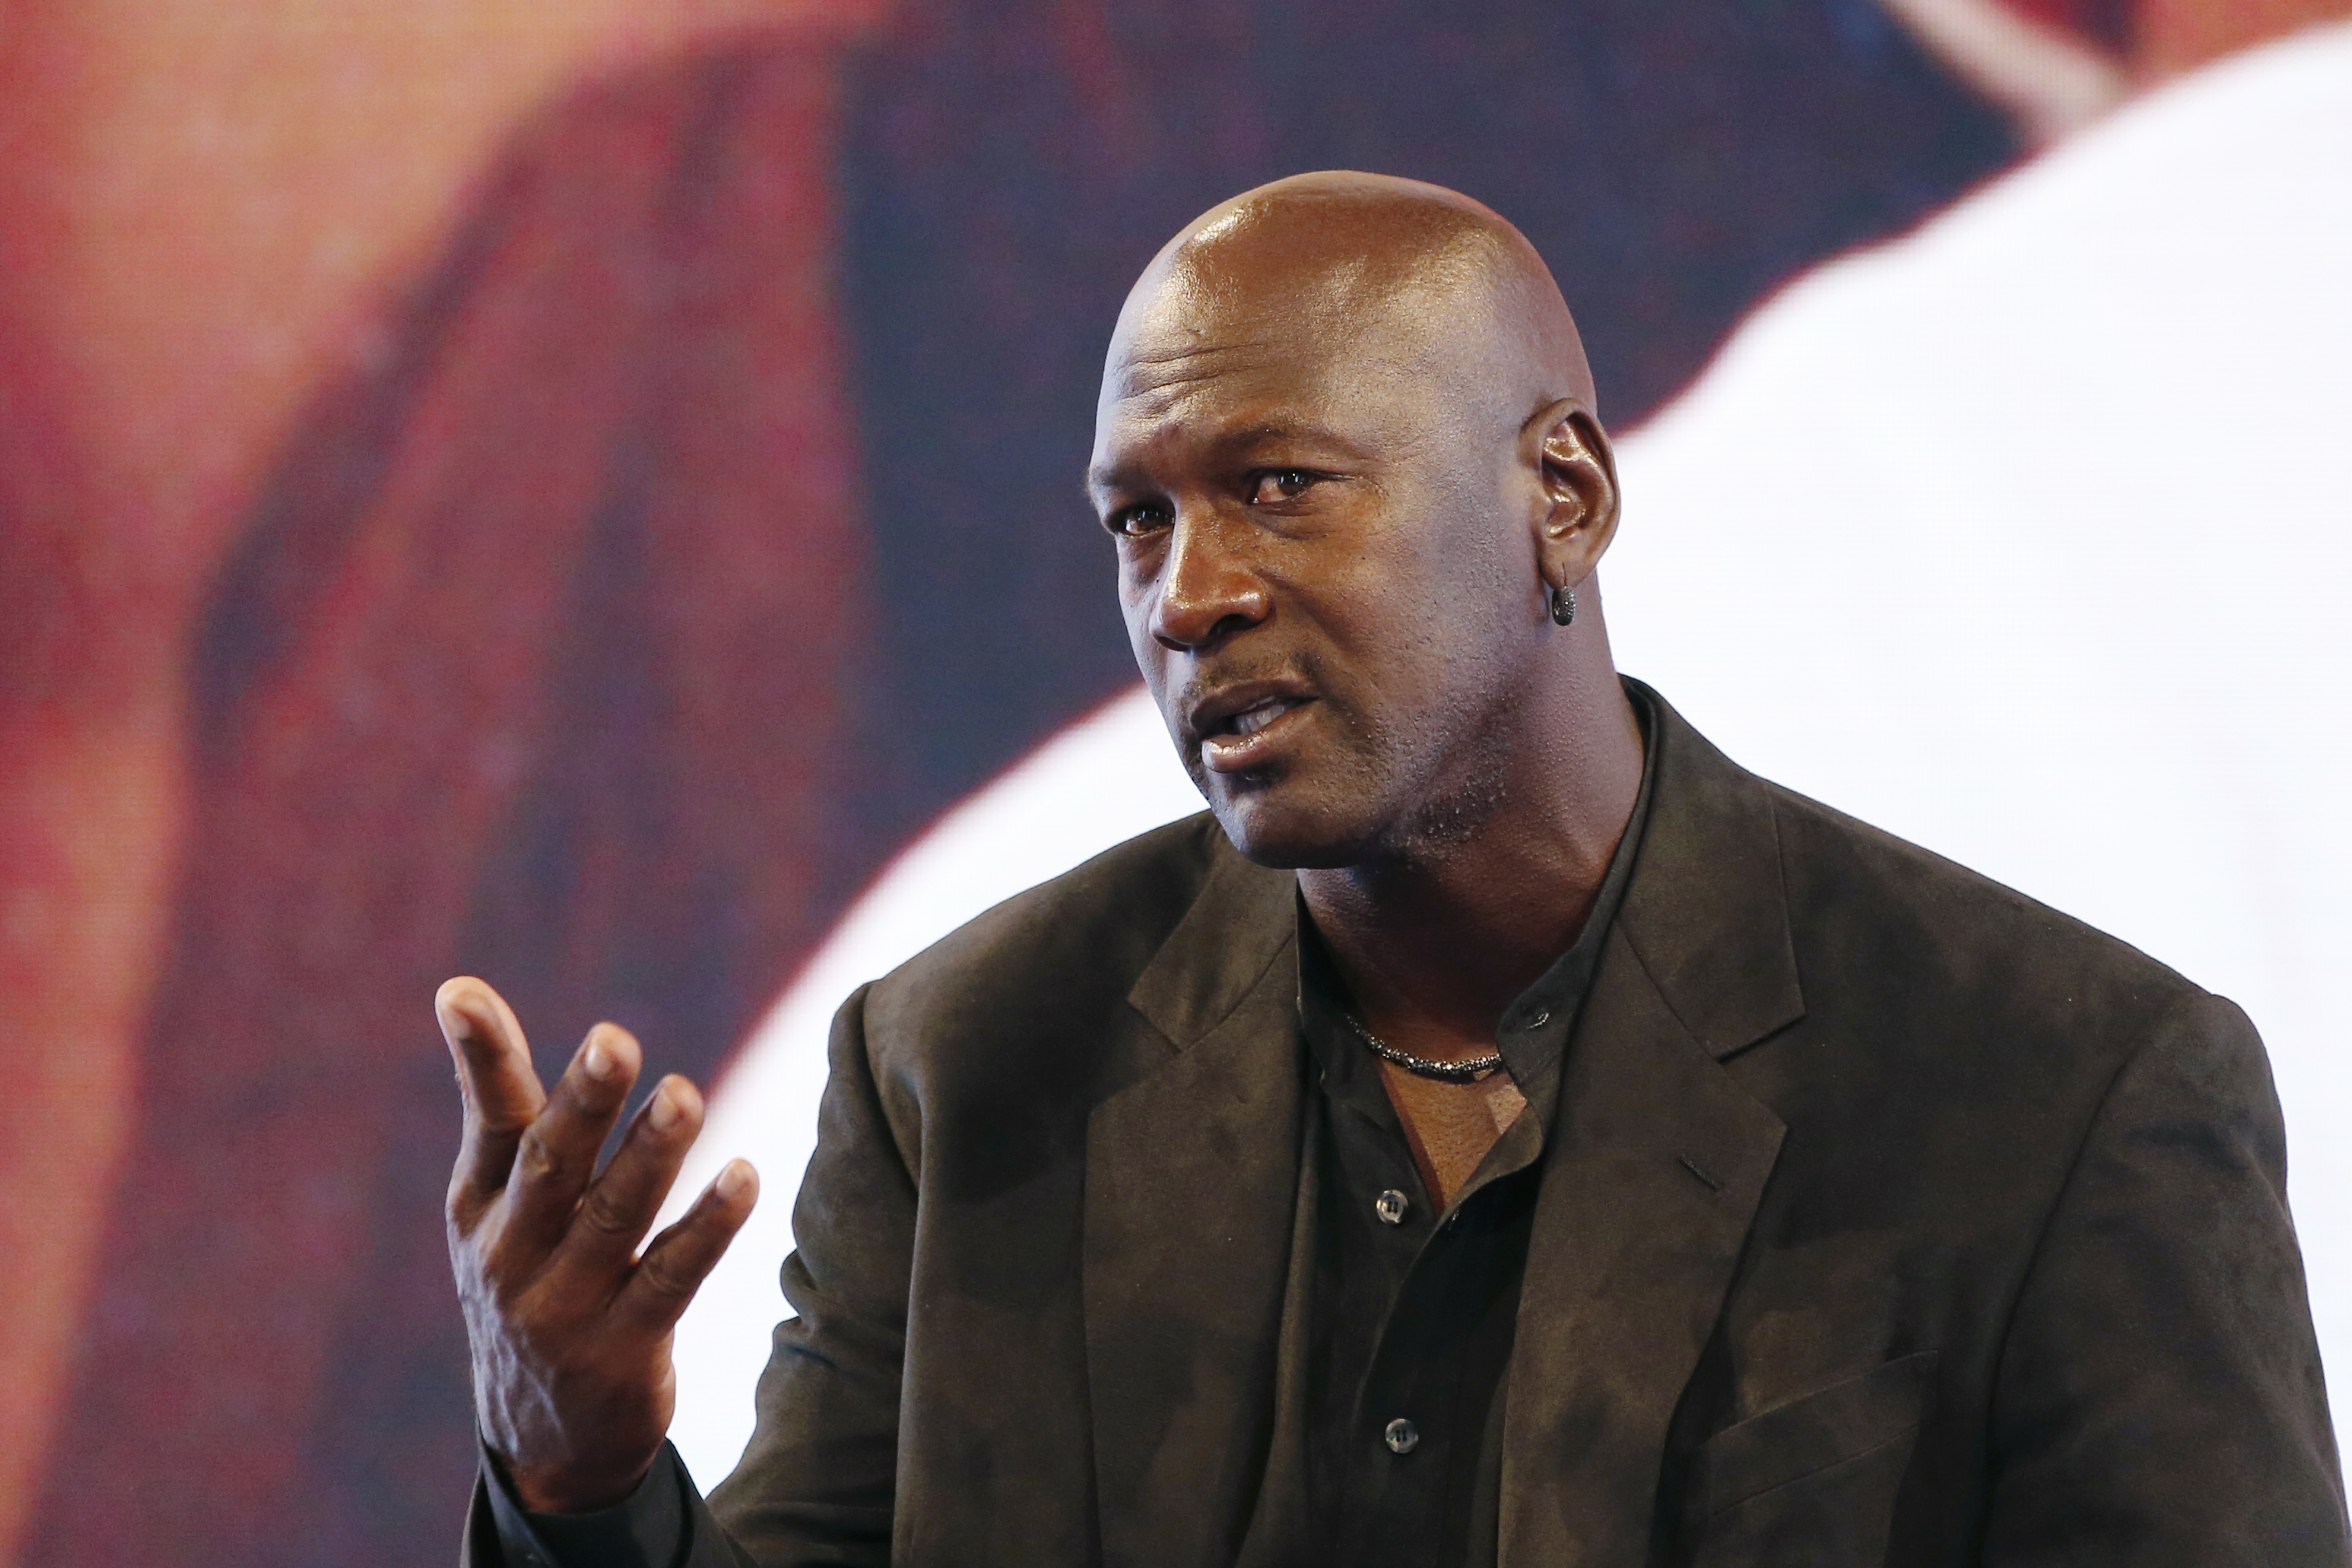 Former professional US basketball player Michael Jordan delivers a press conference at the Palais de Tokyo in Paris on June 12, 2015 to present Palais 23, an event at the Palais de Tokyo from June 12 to 14 to celebrate the 30th anniversary of Jordan Brand.  AFP PHOTO / PATRICK KOVARIK / AFP PHOTO / PATRICK KOVARIK